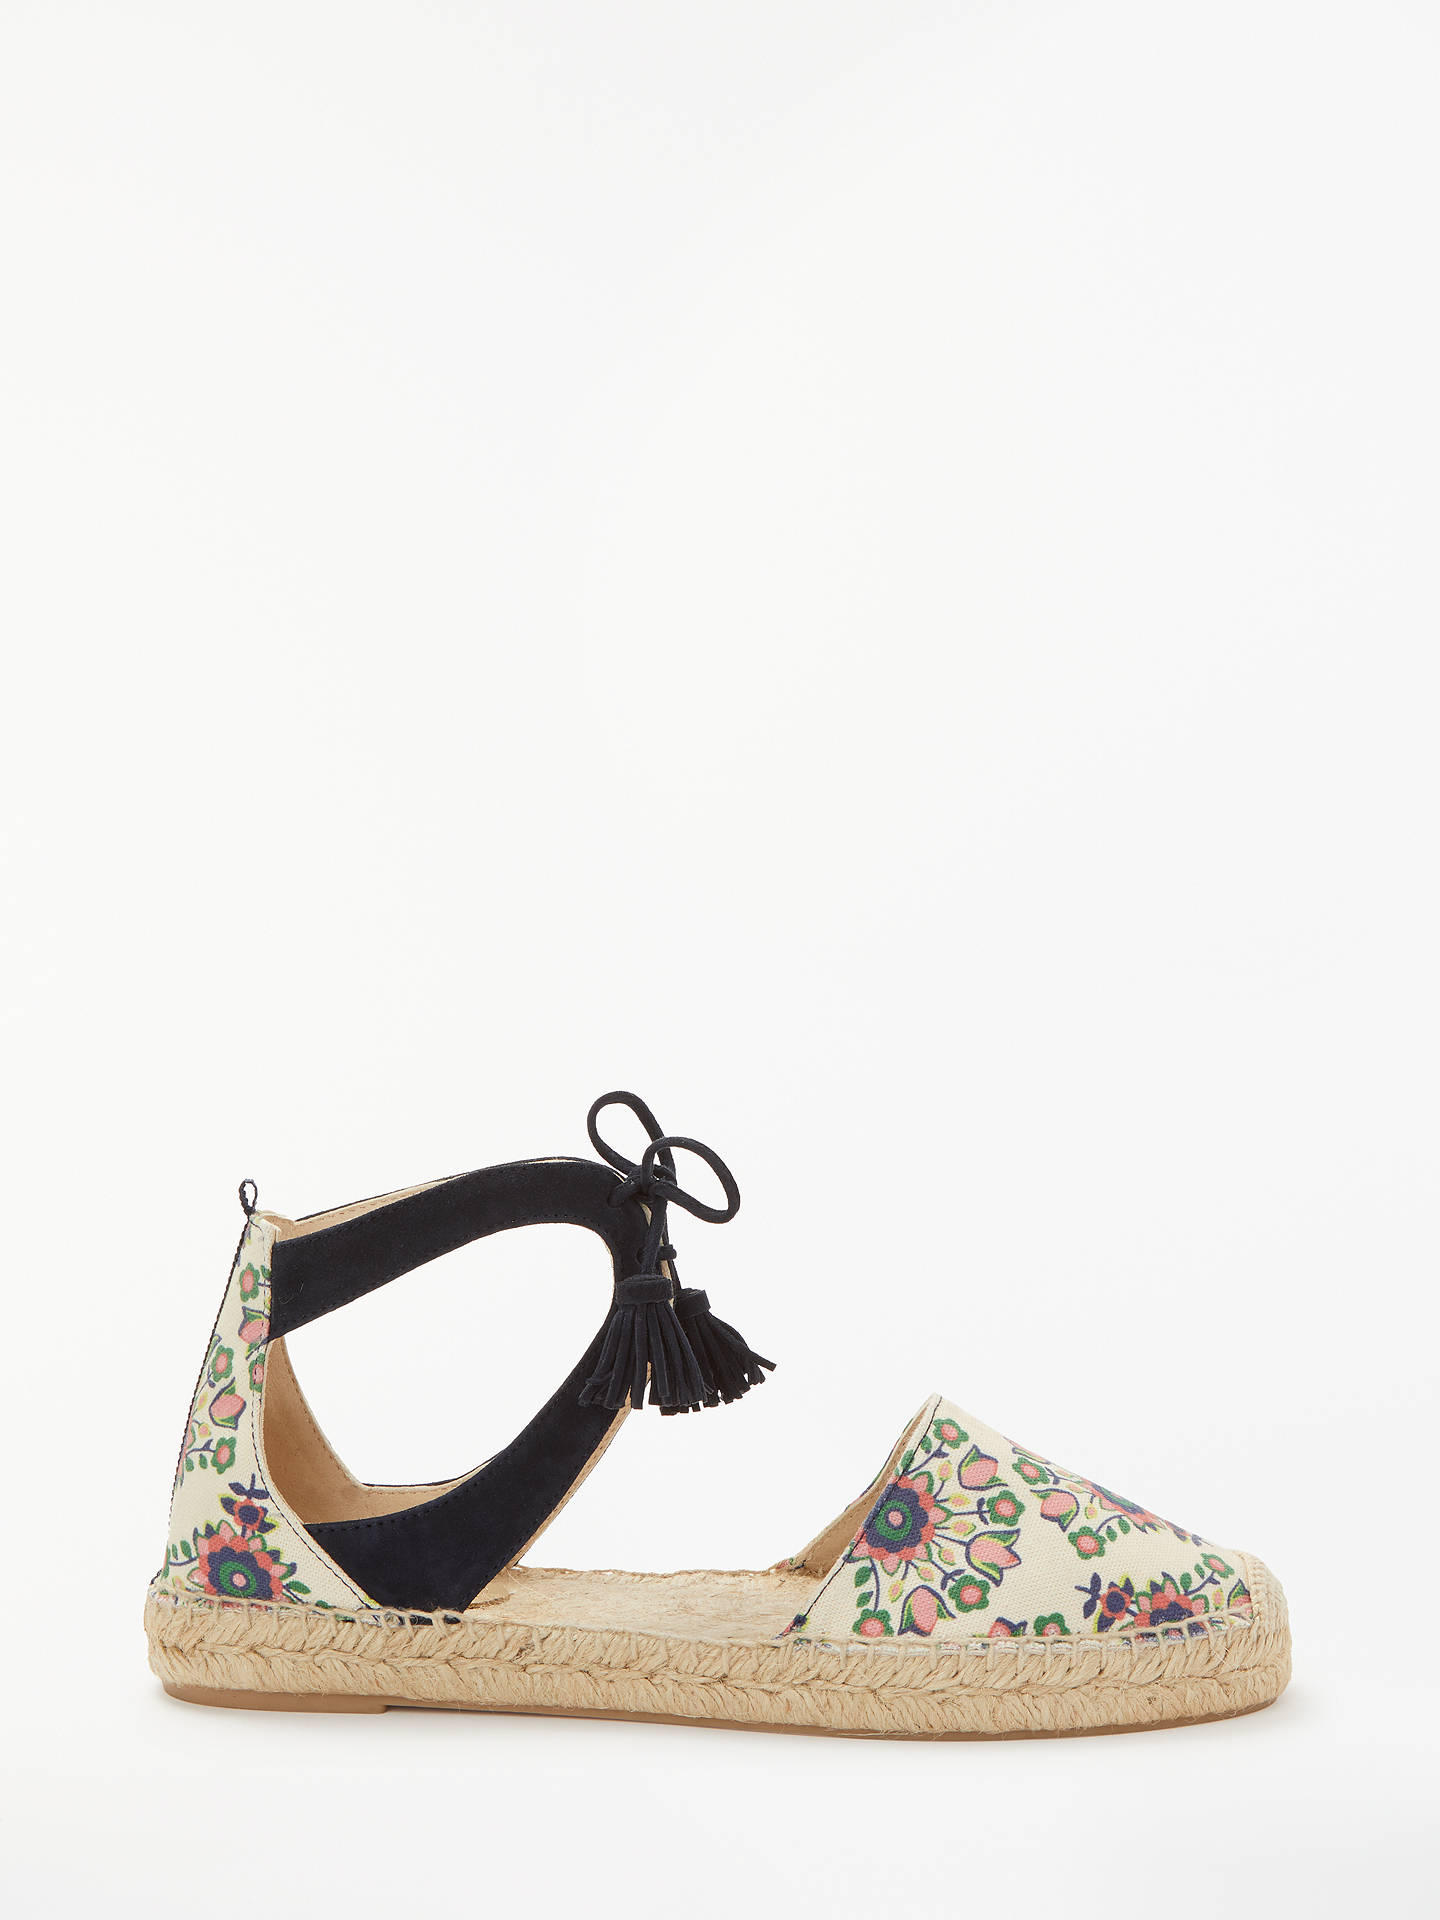 BuyBoden Candice Floral Espadrilles, Ivory/Multi, 7 Online at johnlewis.com